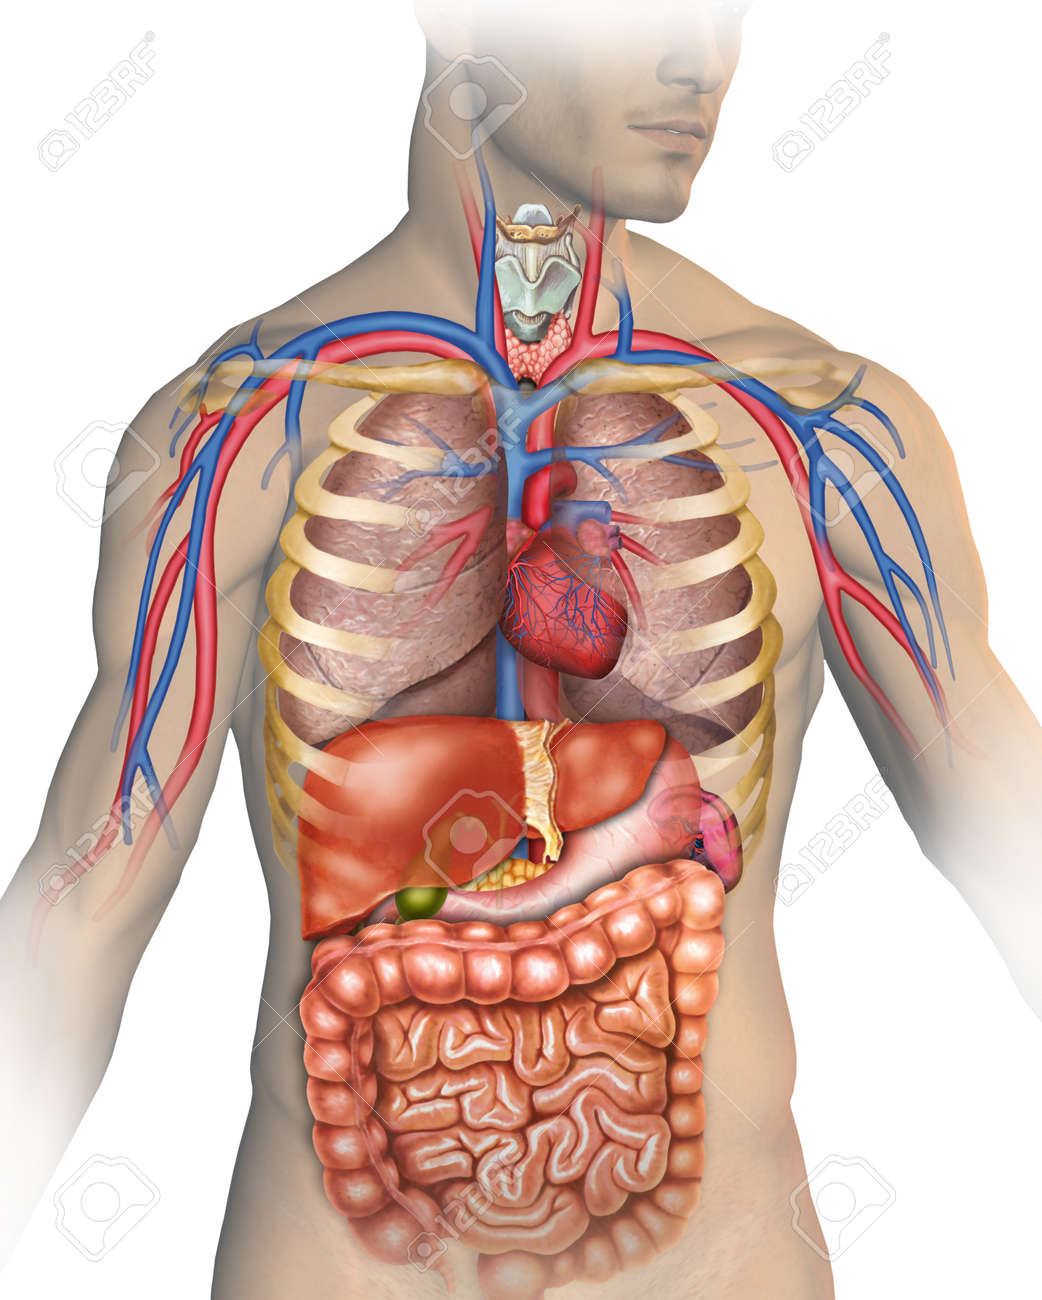 Anatomy Of The Human Body Stock Photo Picture And Royalty Free